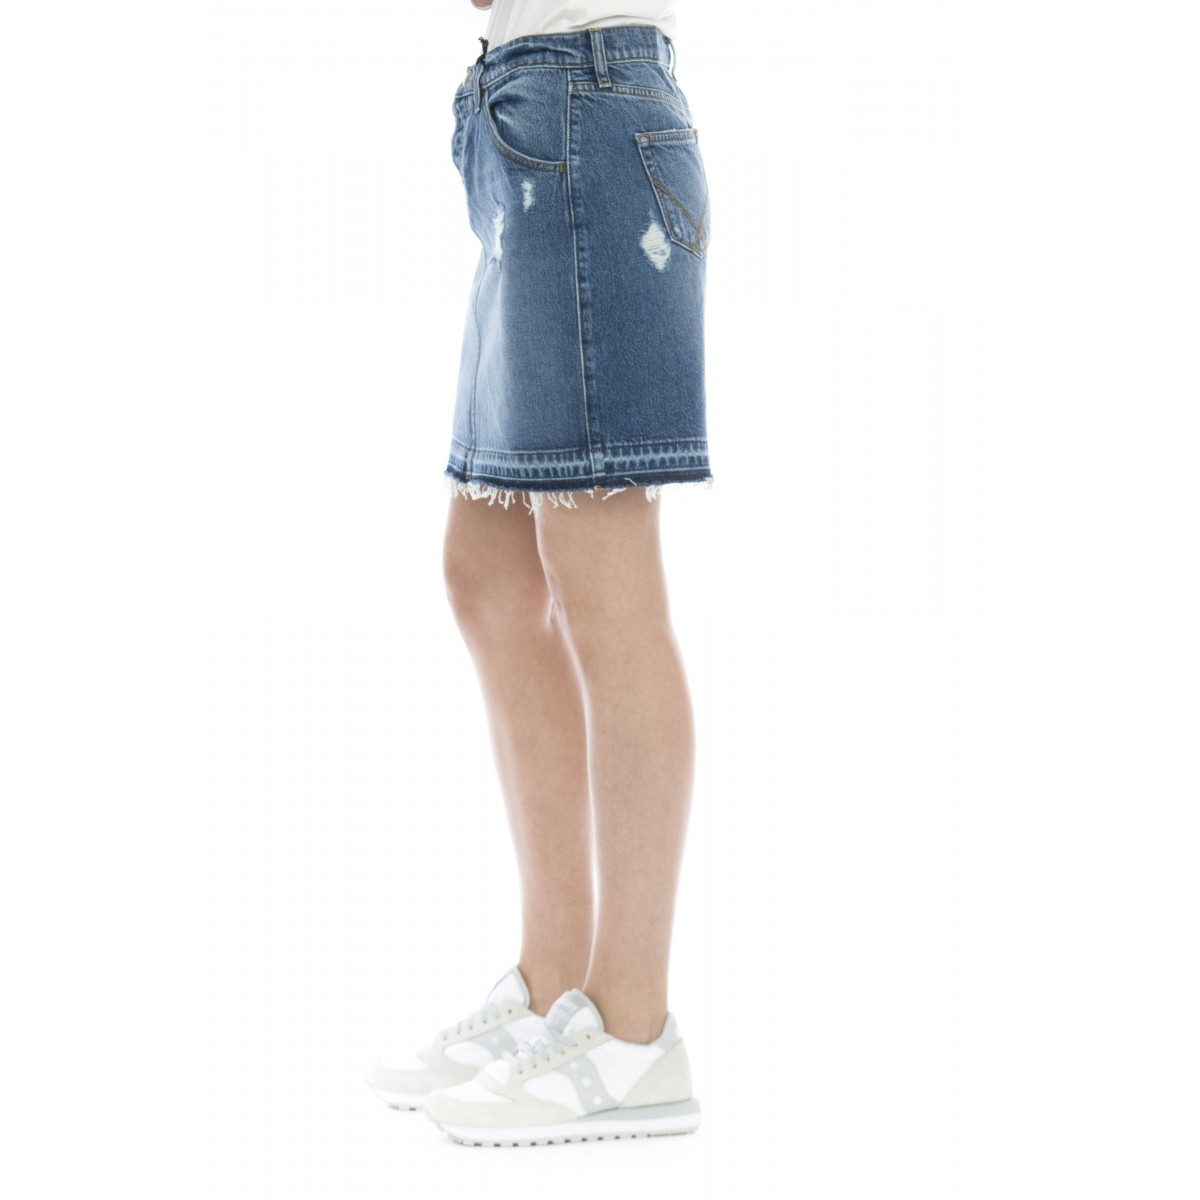 Gonna - Skirt noemi gonna jeans